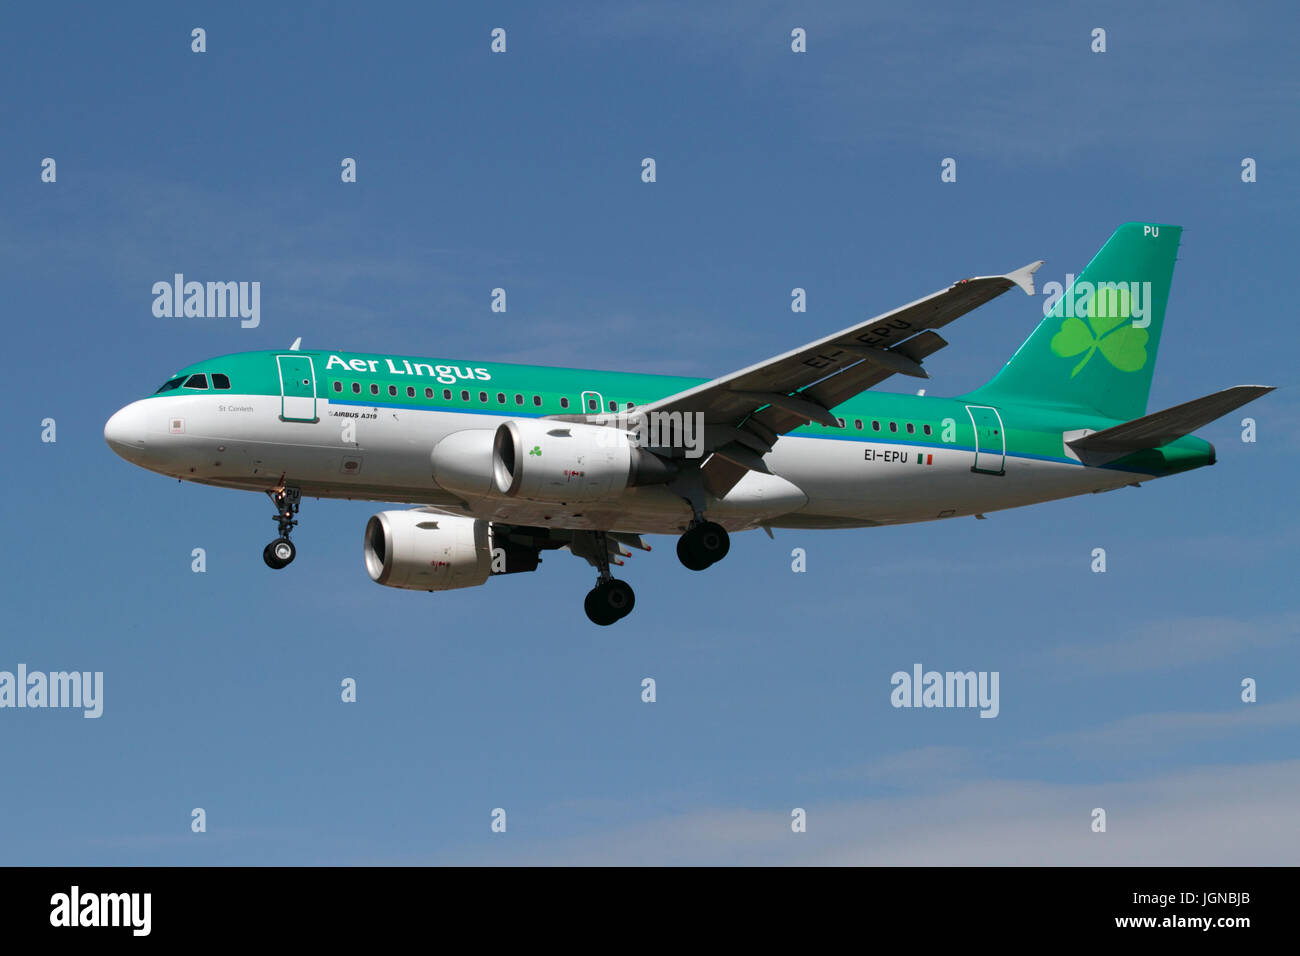 Air travel. Aer Lingus Airbus A319 airliner on approach against a clear blue sky - Stock Image